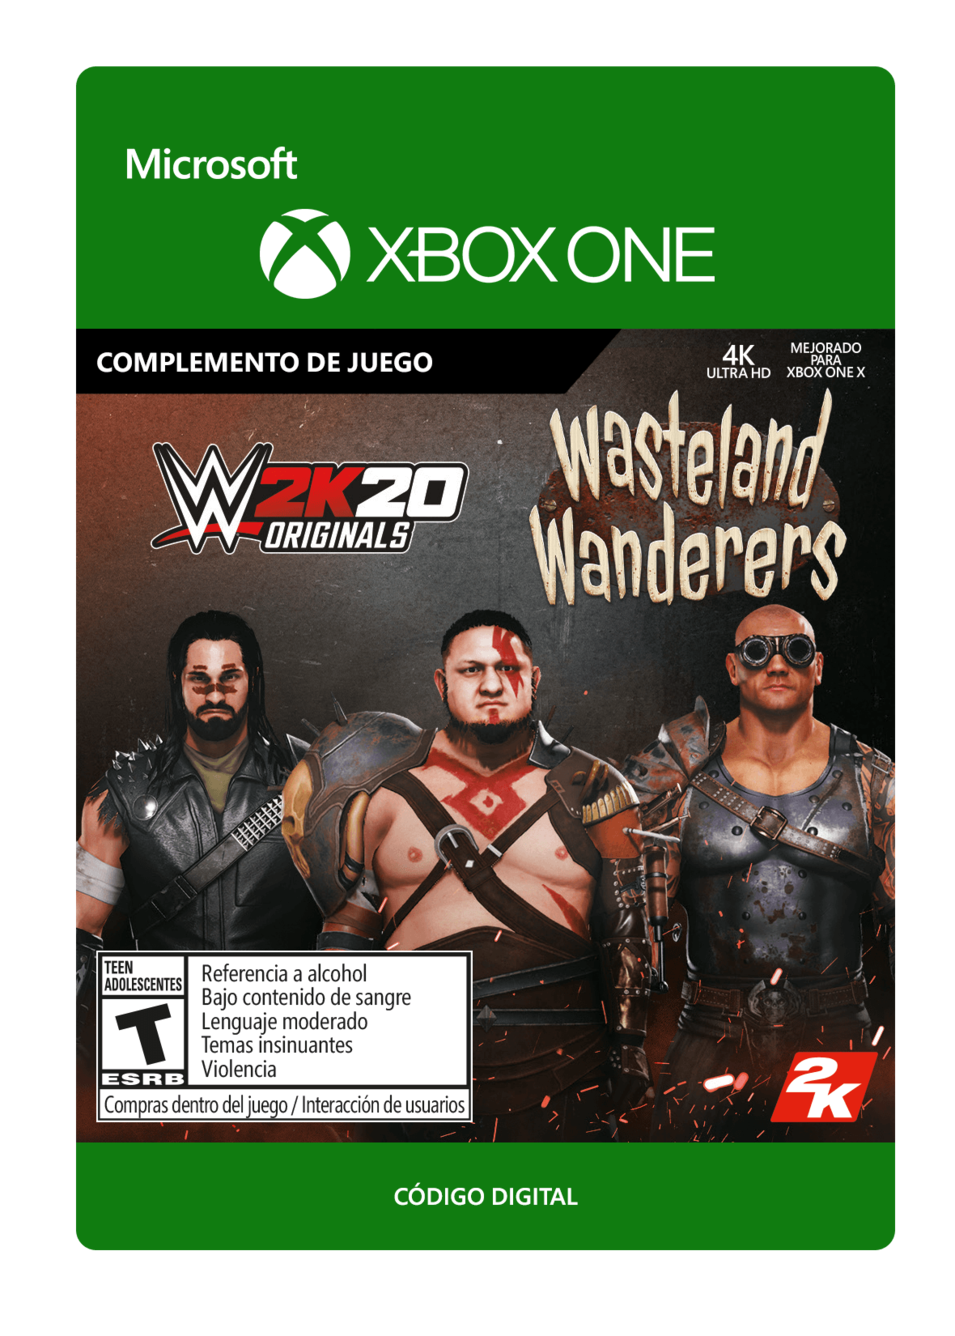 WWE 2K20 - Originals: Wasteland Wanderers - DLC